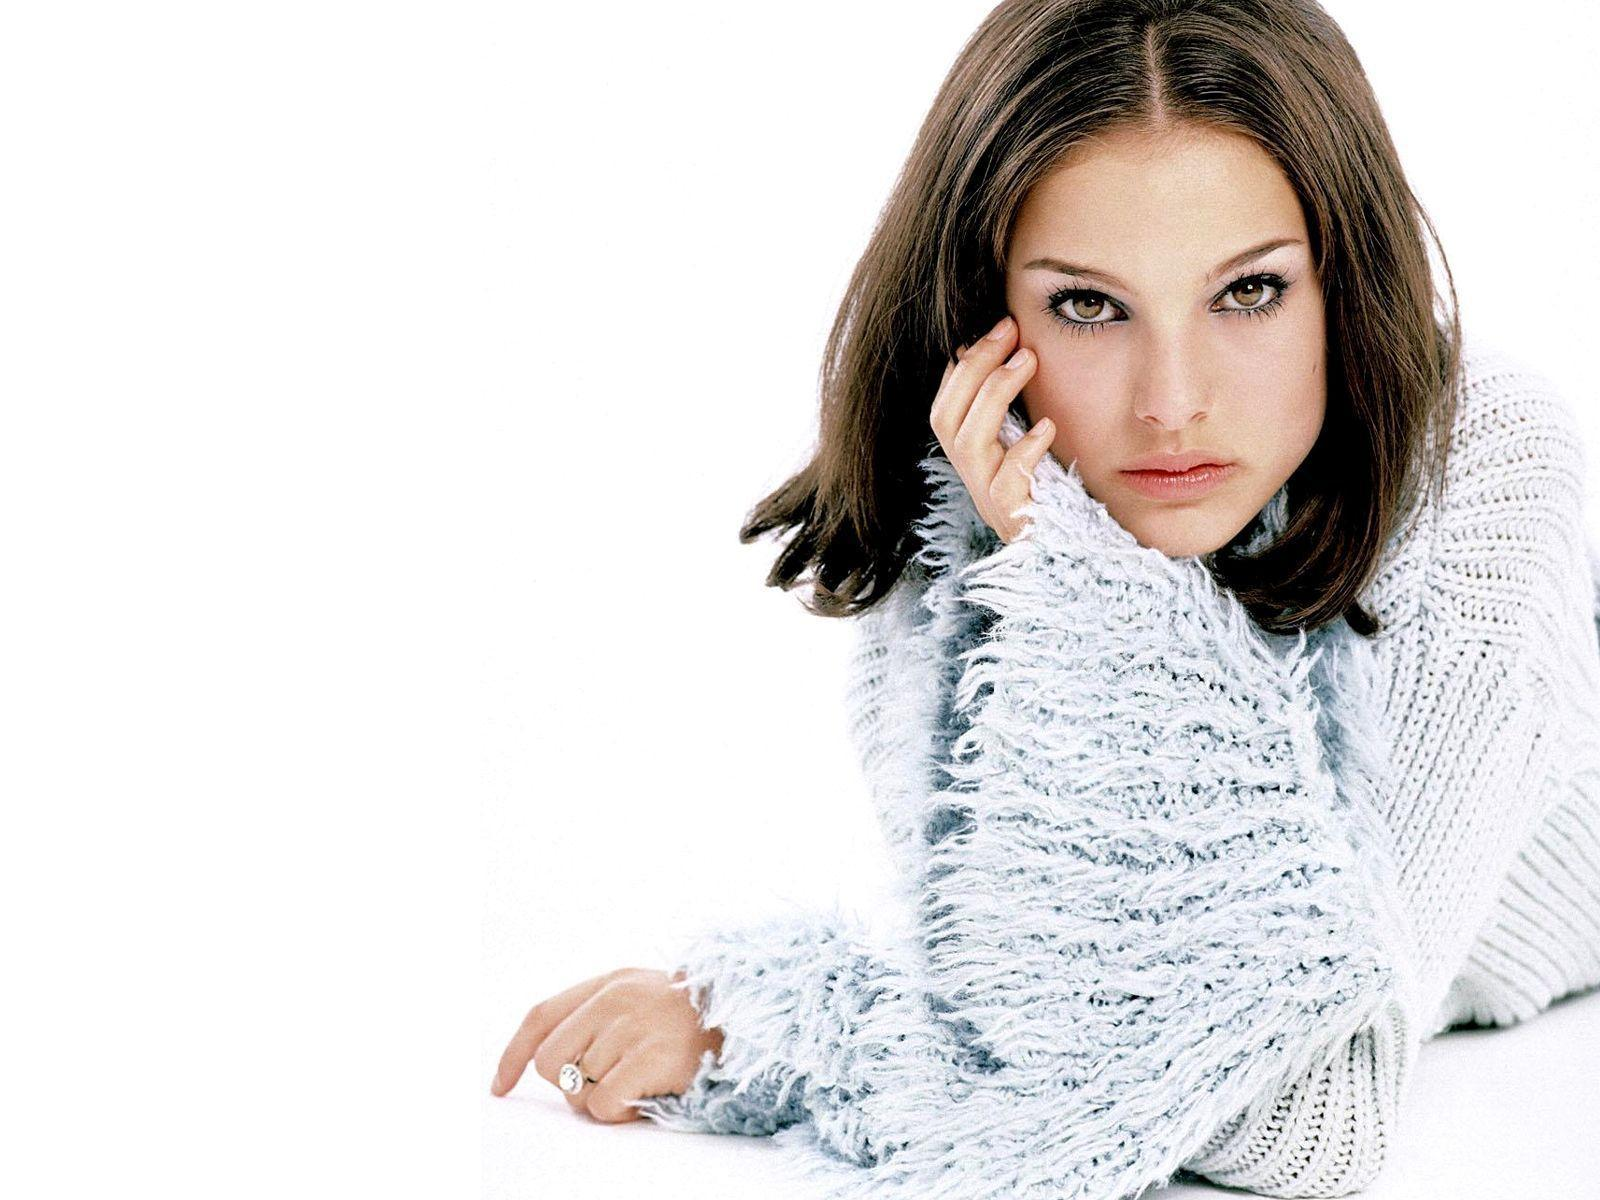 Natalie Portman HD Wallpapers - HD Wallpapers Inn